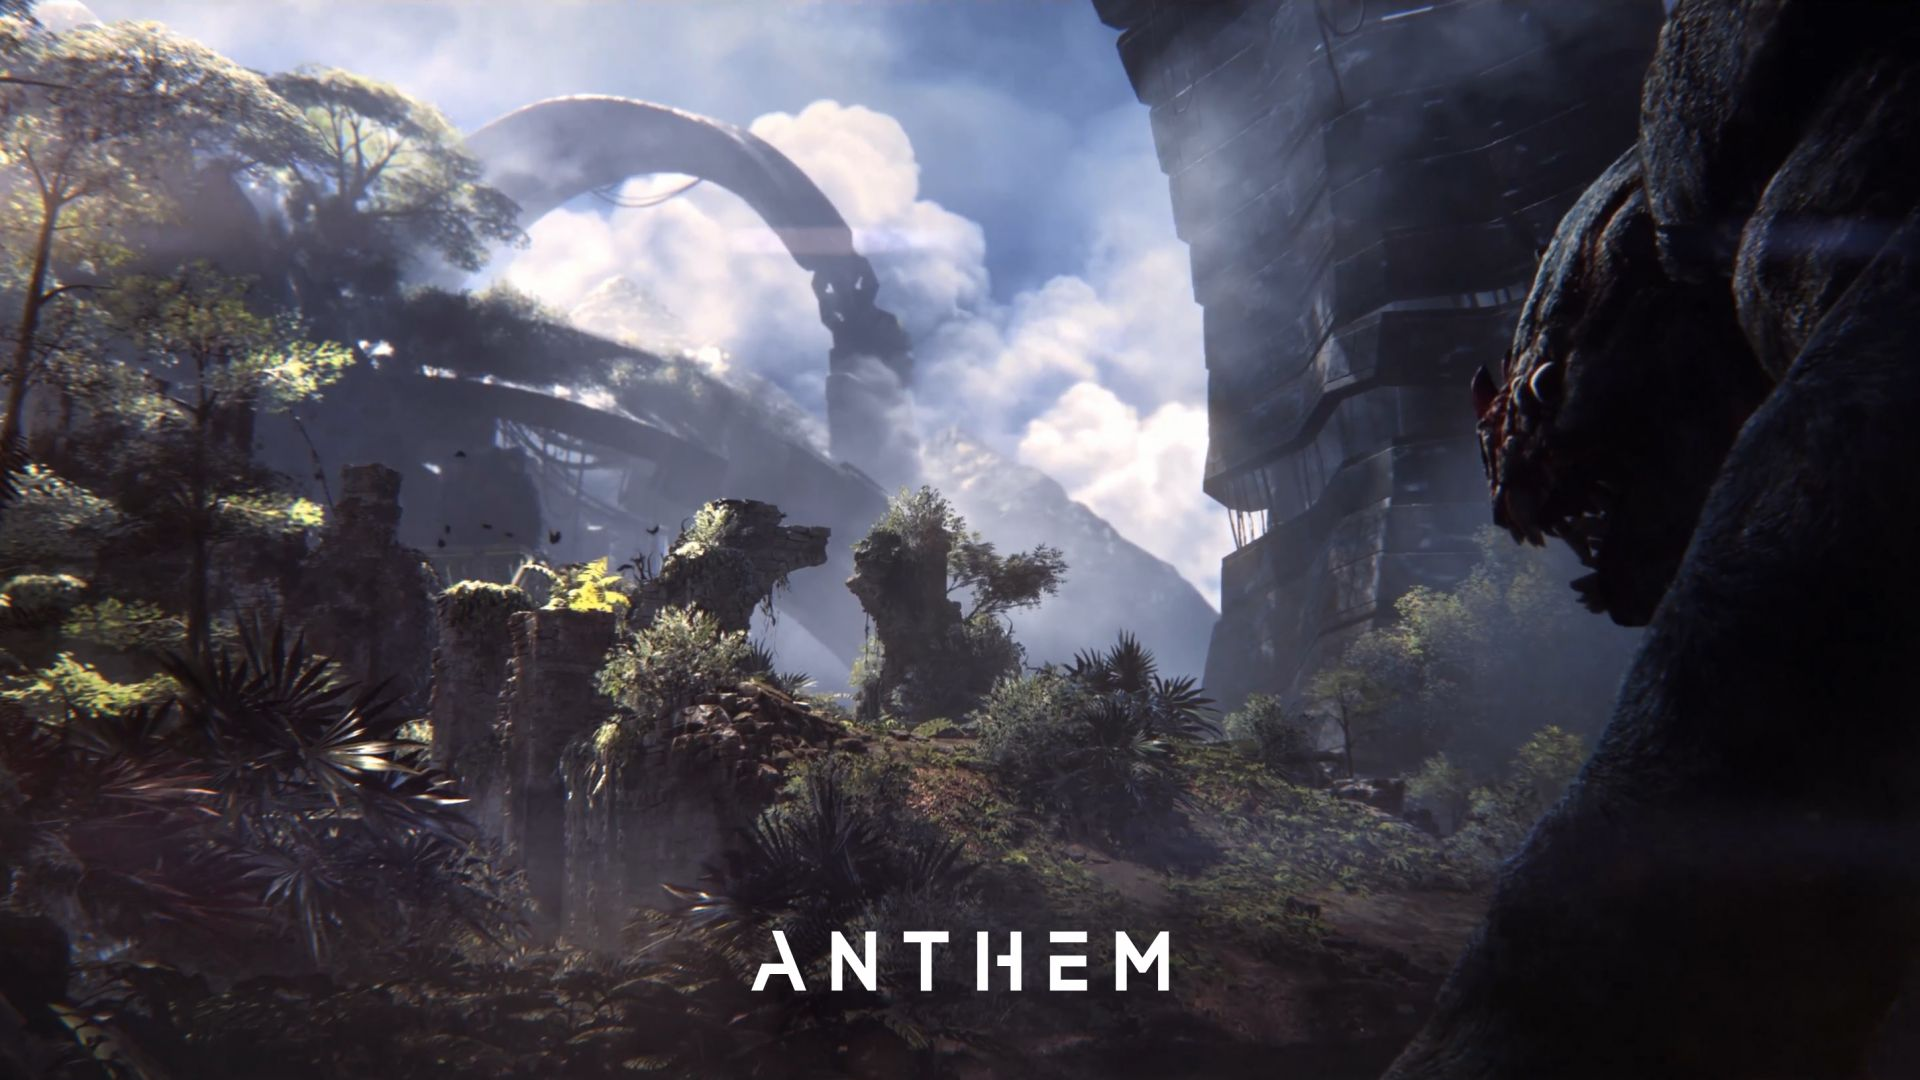 Wallpaper anthem 4k screenshot gameplay e3 2017 games for Wallpaper home 4k